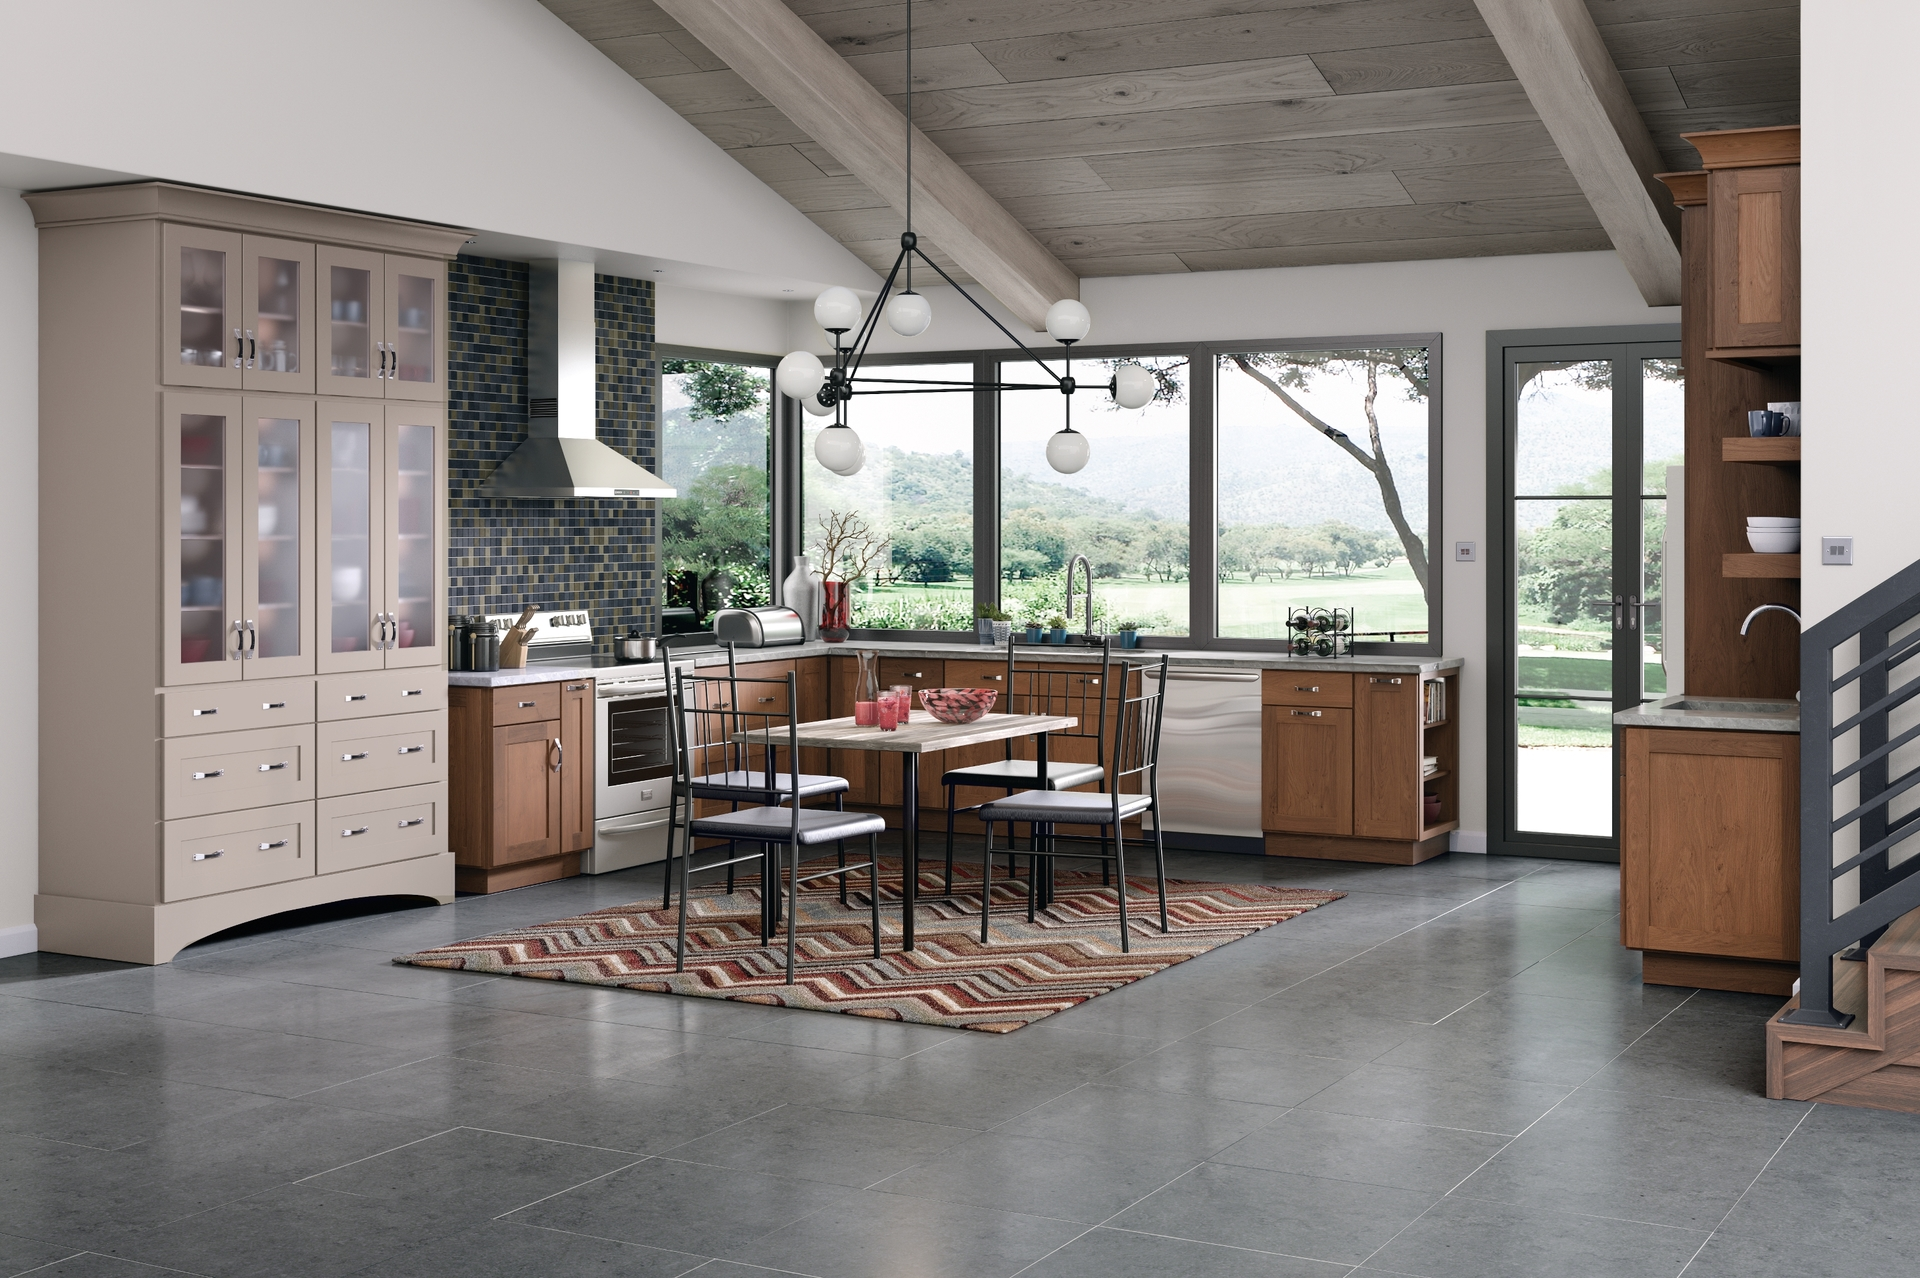 Cardell Kitchen Cabinets Timblin Rustic Alder In Husk